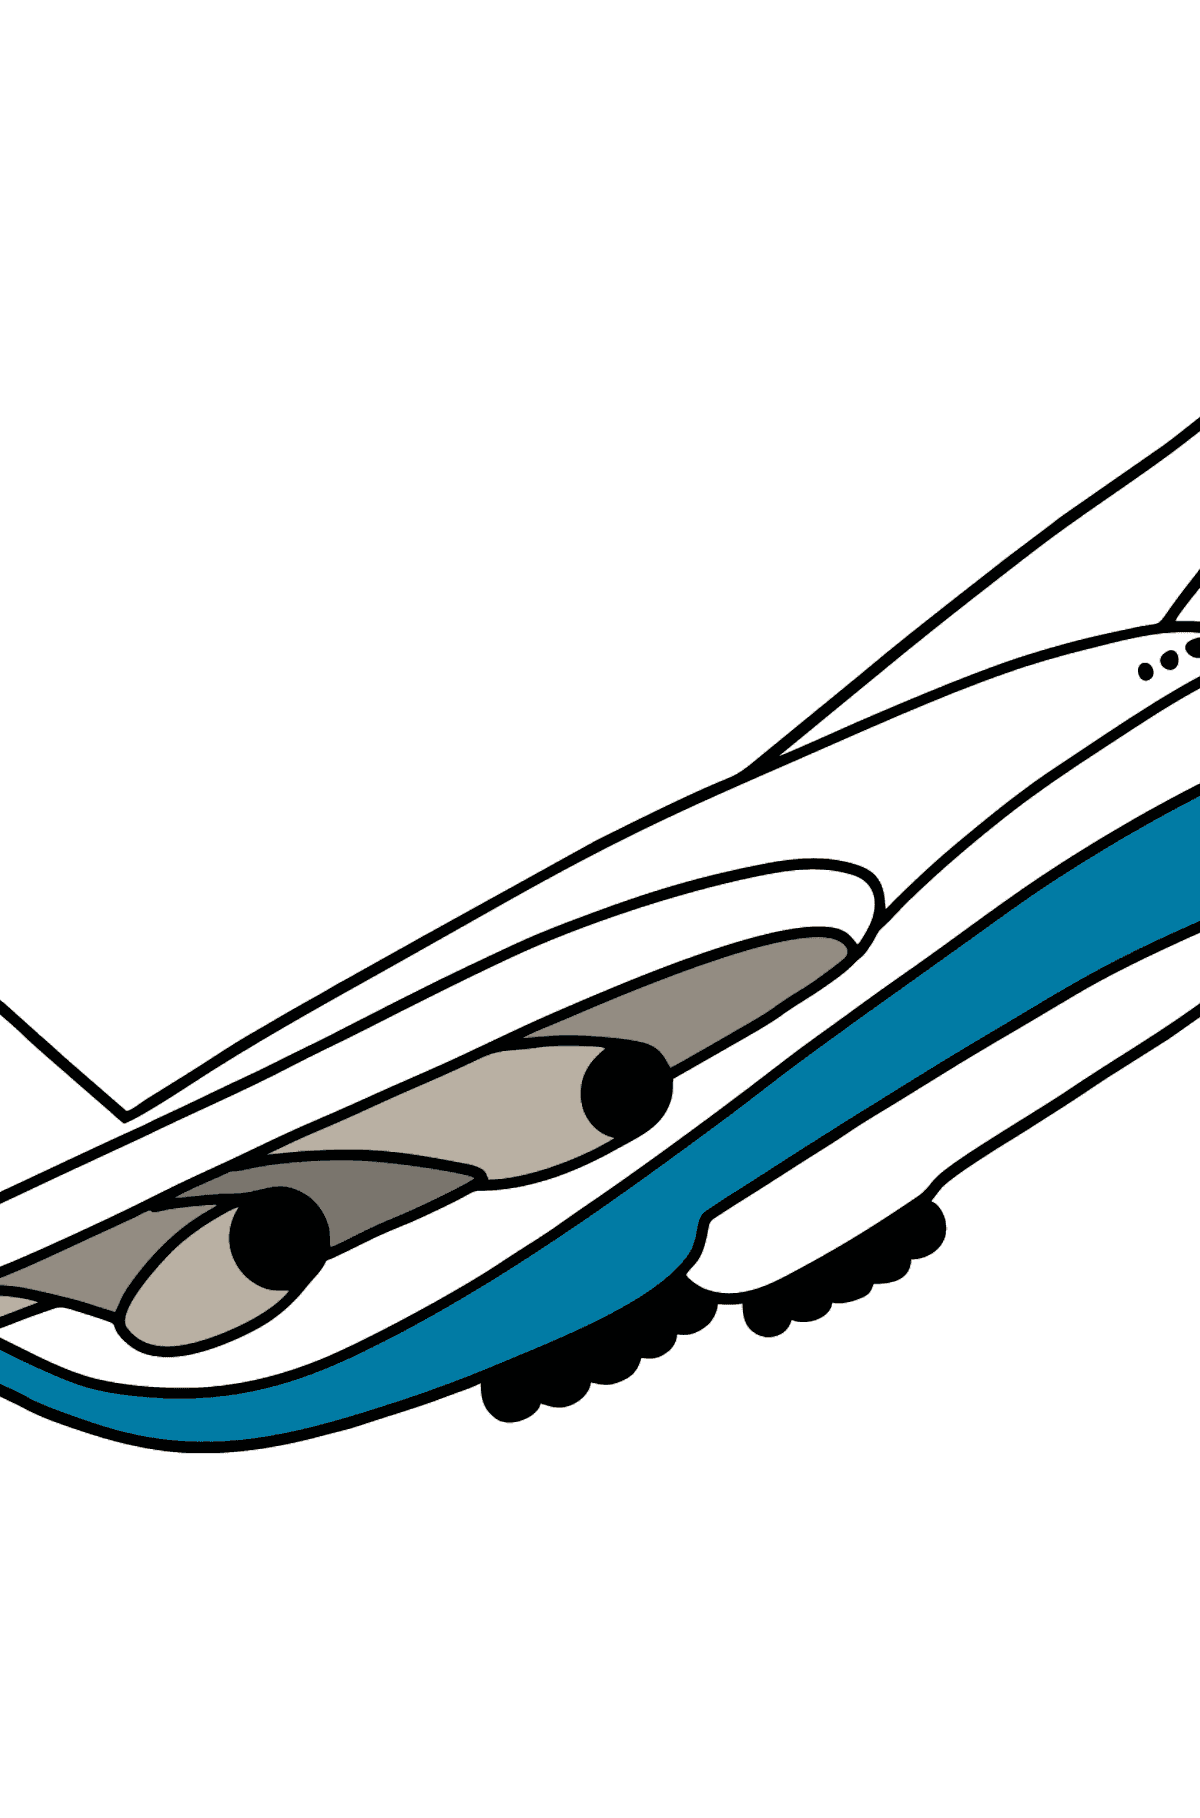 Boeing 747 coloring page - Coloring Pages for Kids